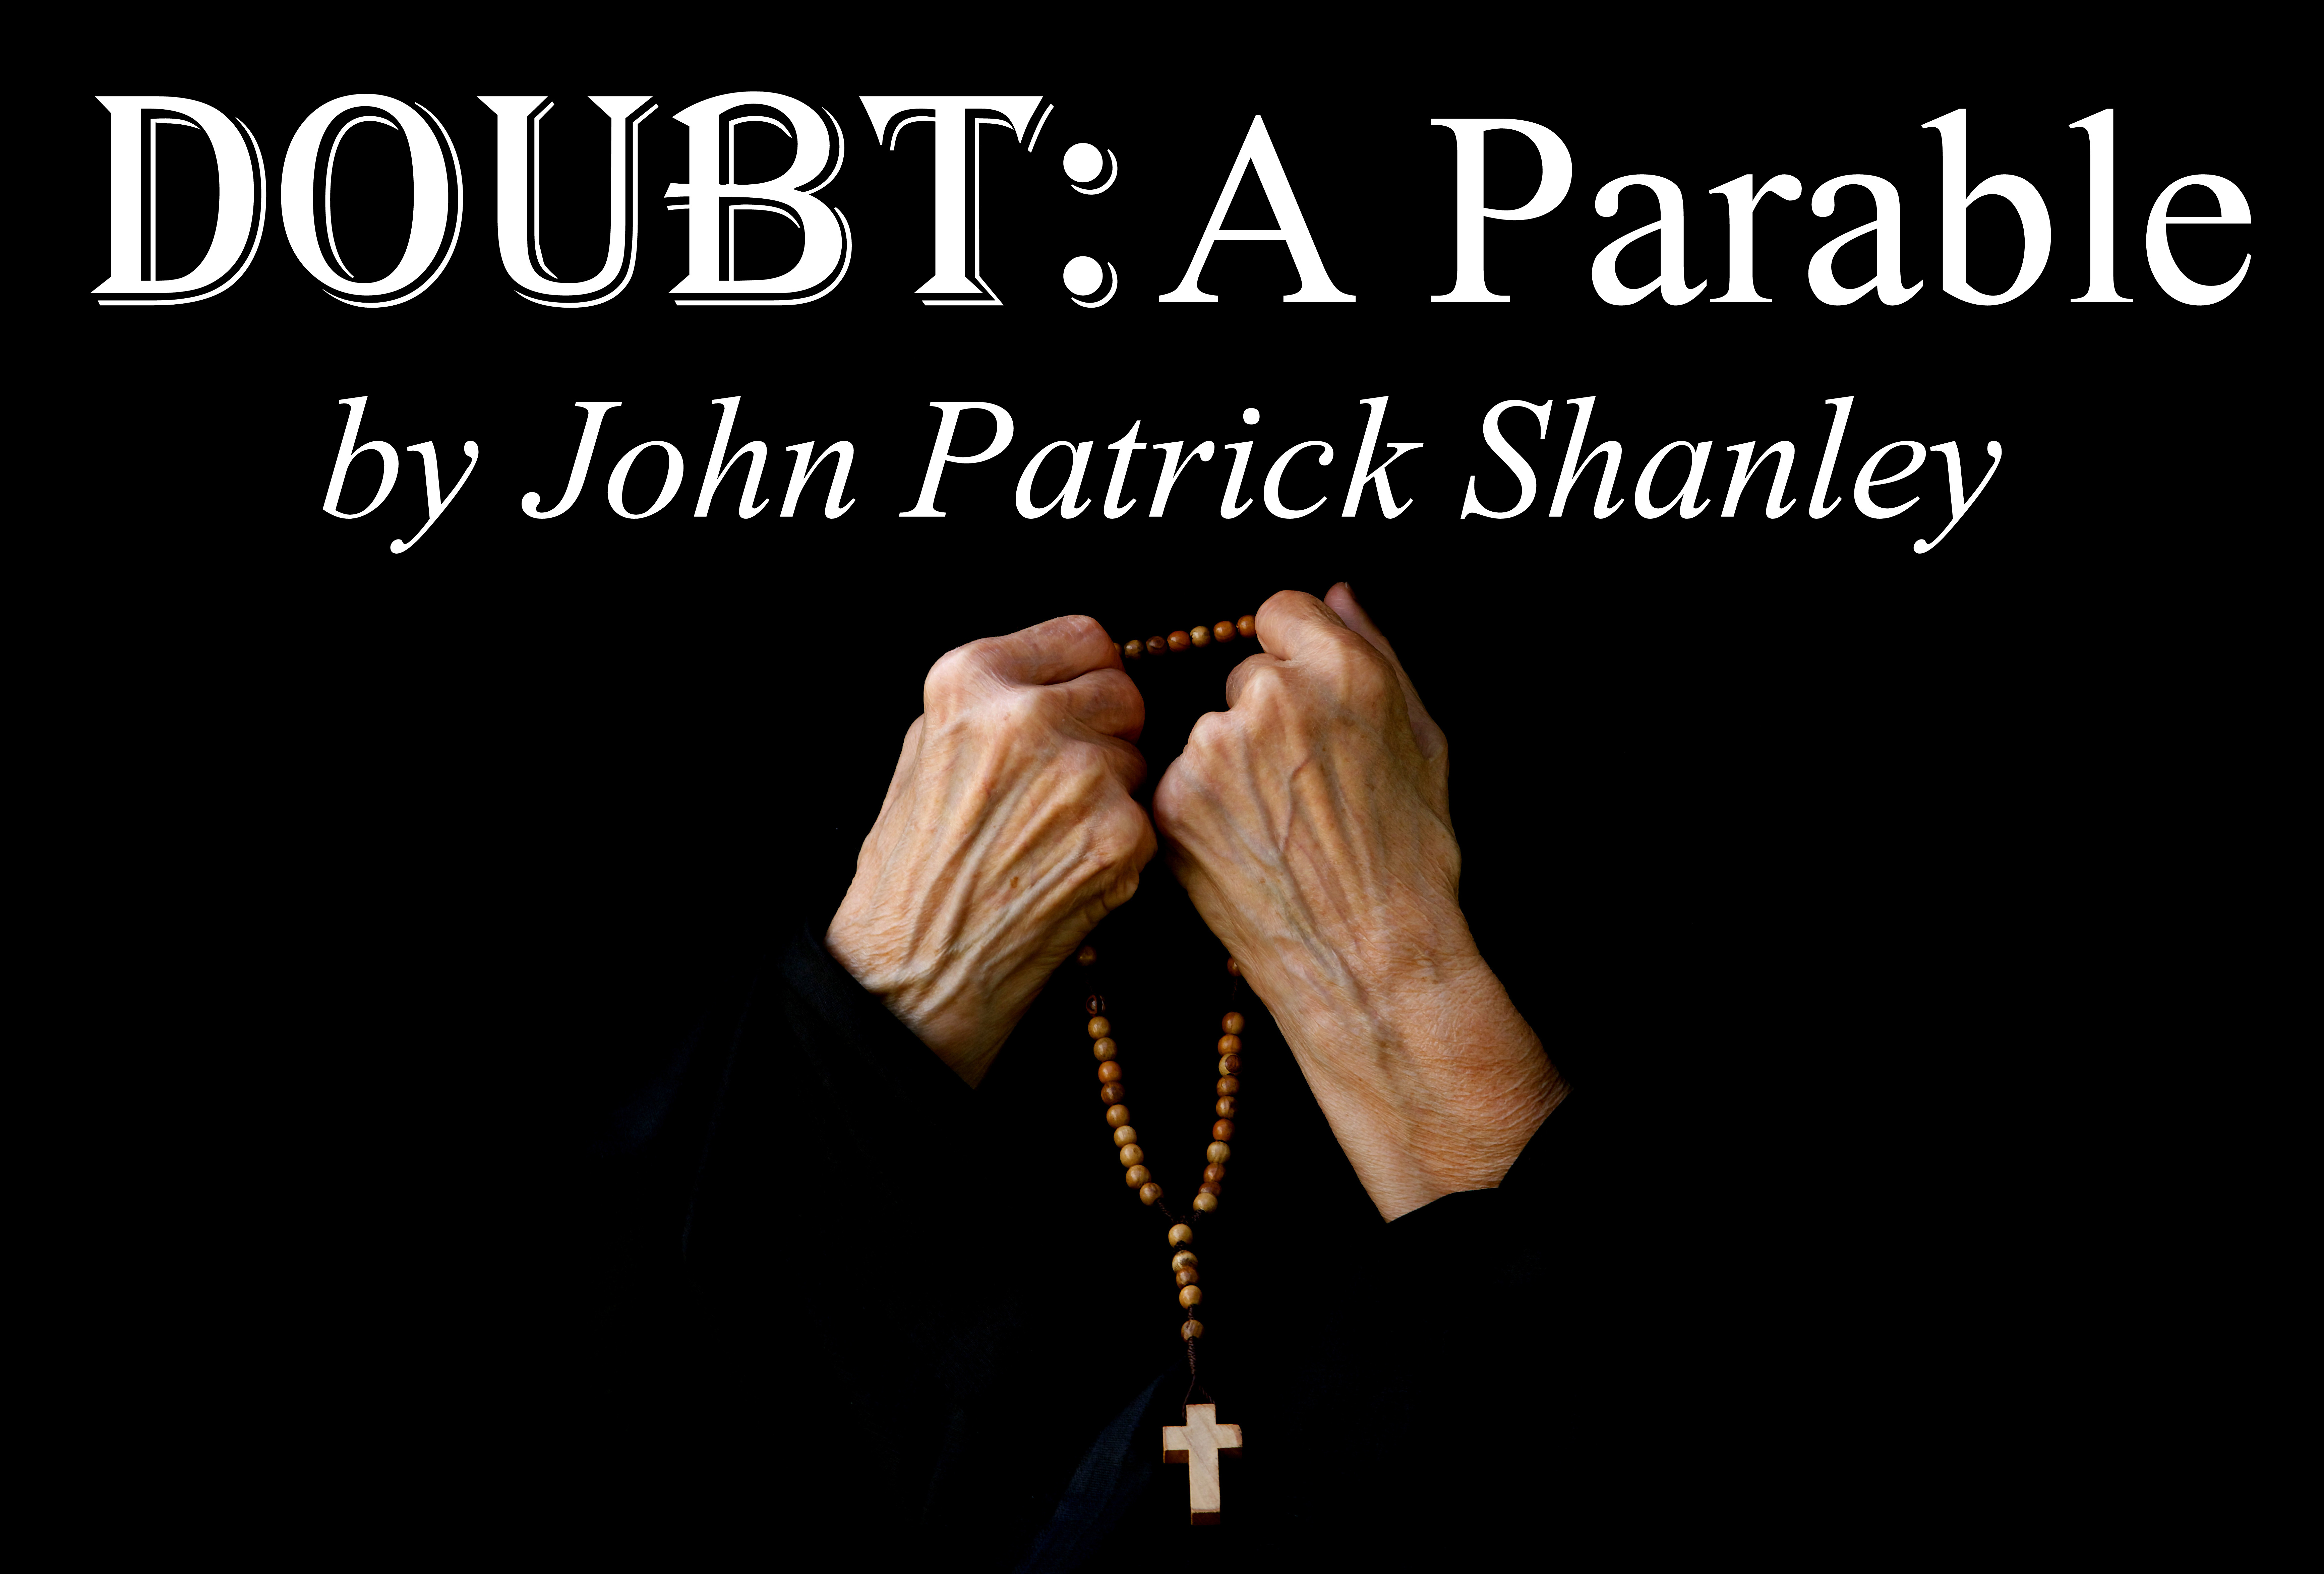 doubt by john patrick shanley John patrick shanley is no stranger to doubt the playwright — whose pulitzer prize-winning play doubt, a parable has been adapted for the screen.